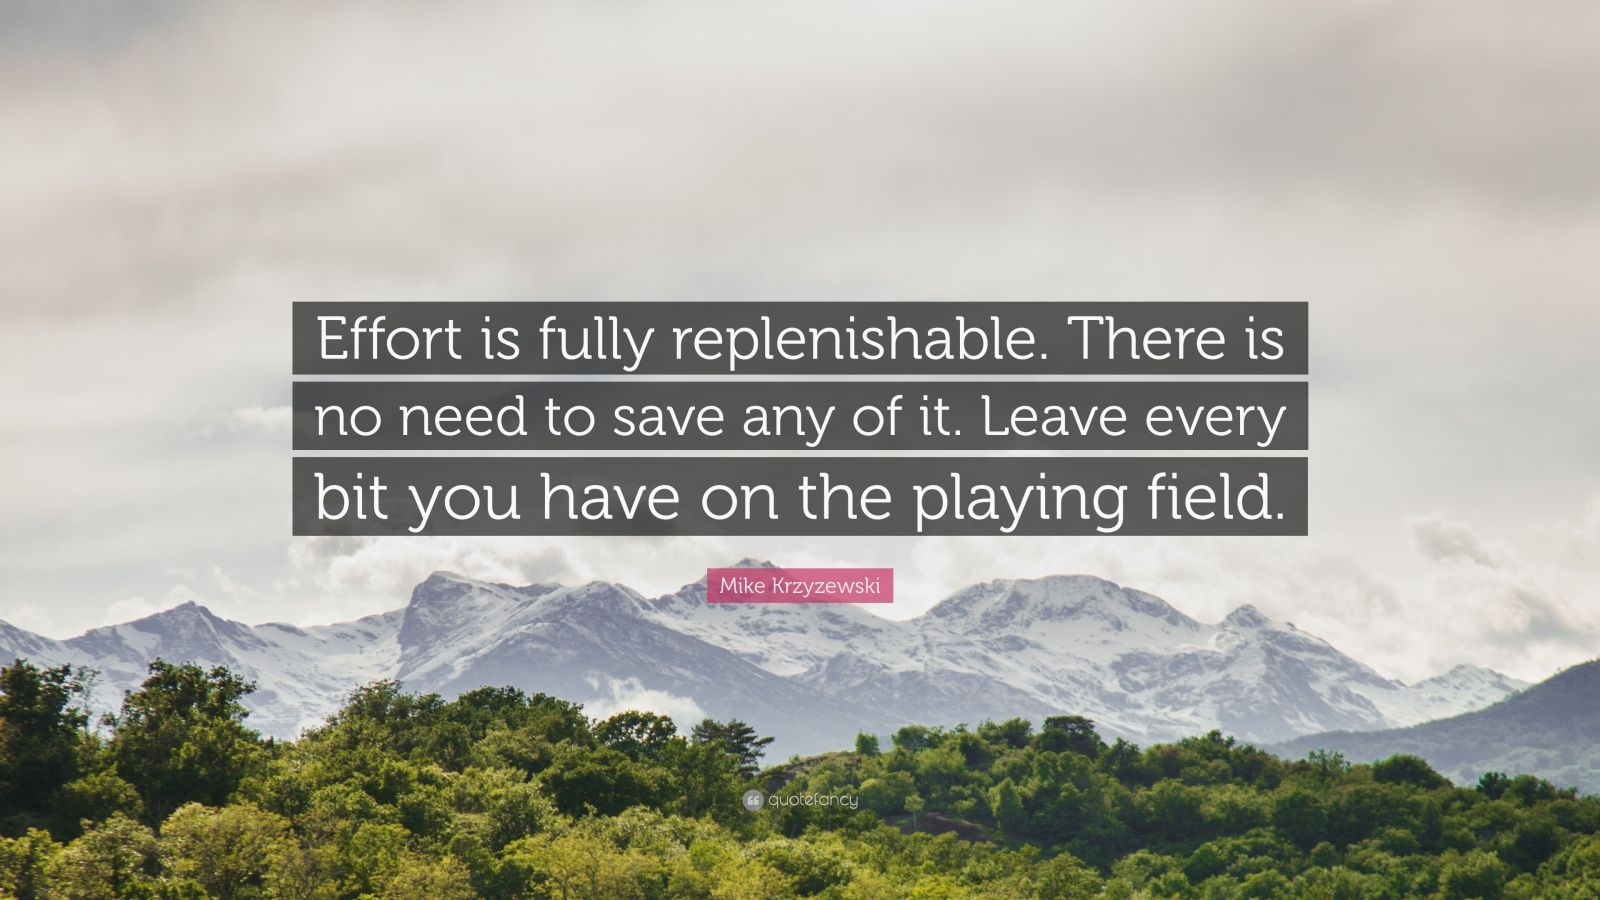 """Mike Krzyzewski Quote: """"Effort is fully replenishable. There is no need to save any of it. Leave every bit you have on the playing field."""""""